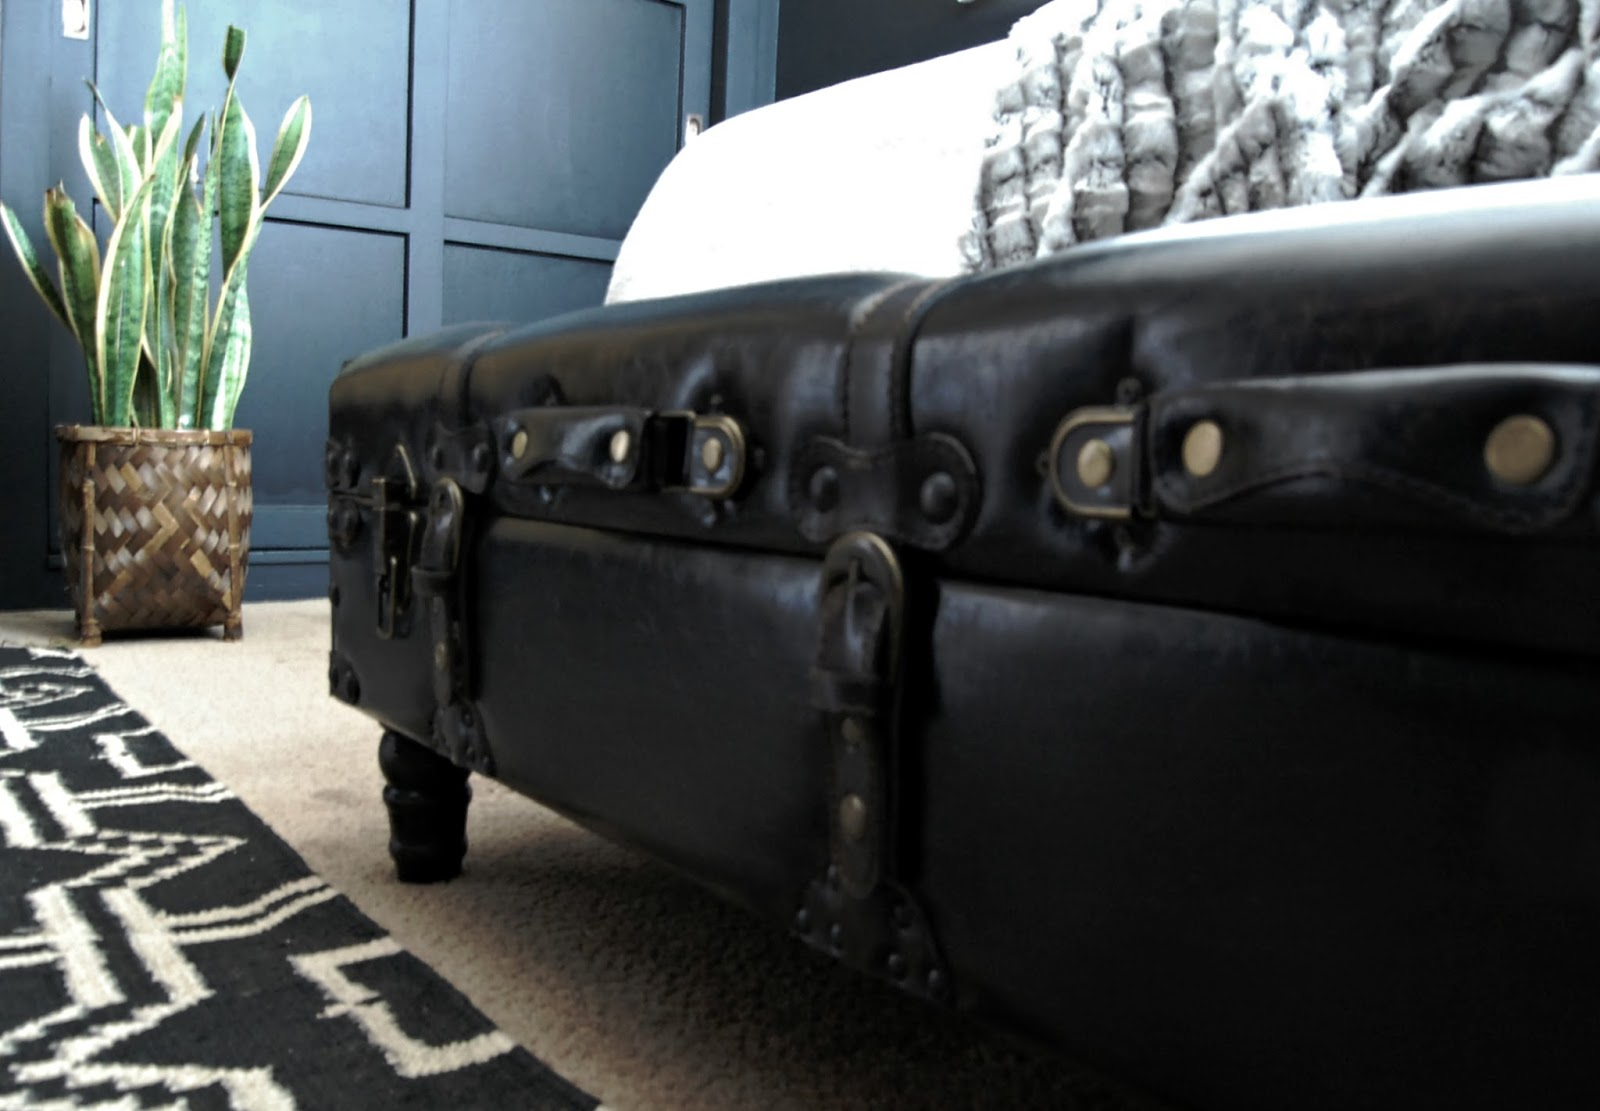 one room challenge bedroom makeover interior design decorating diy home improvement black brass modern vintage eclectic decor leather storage bench